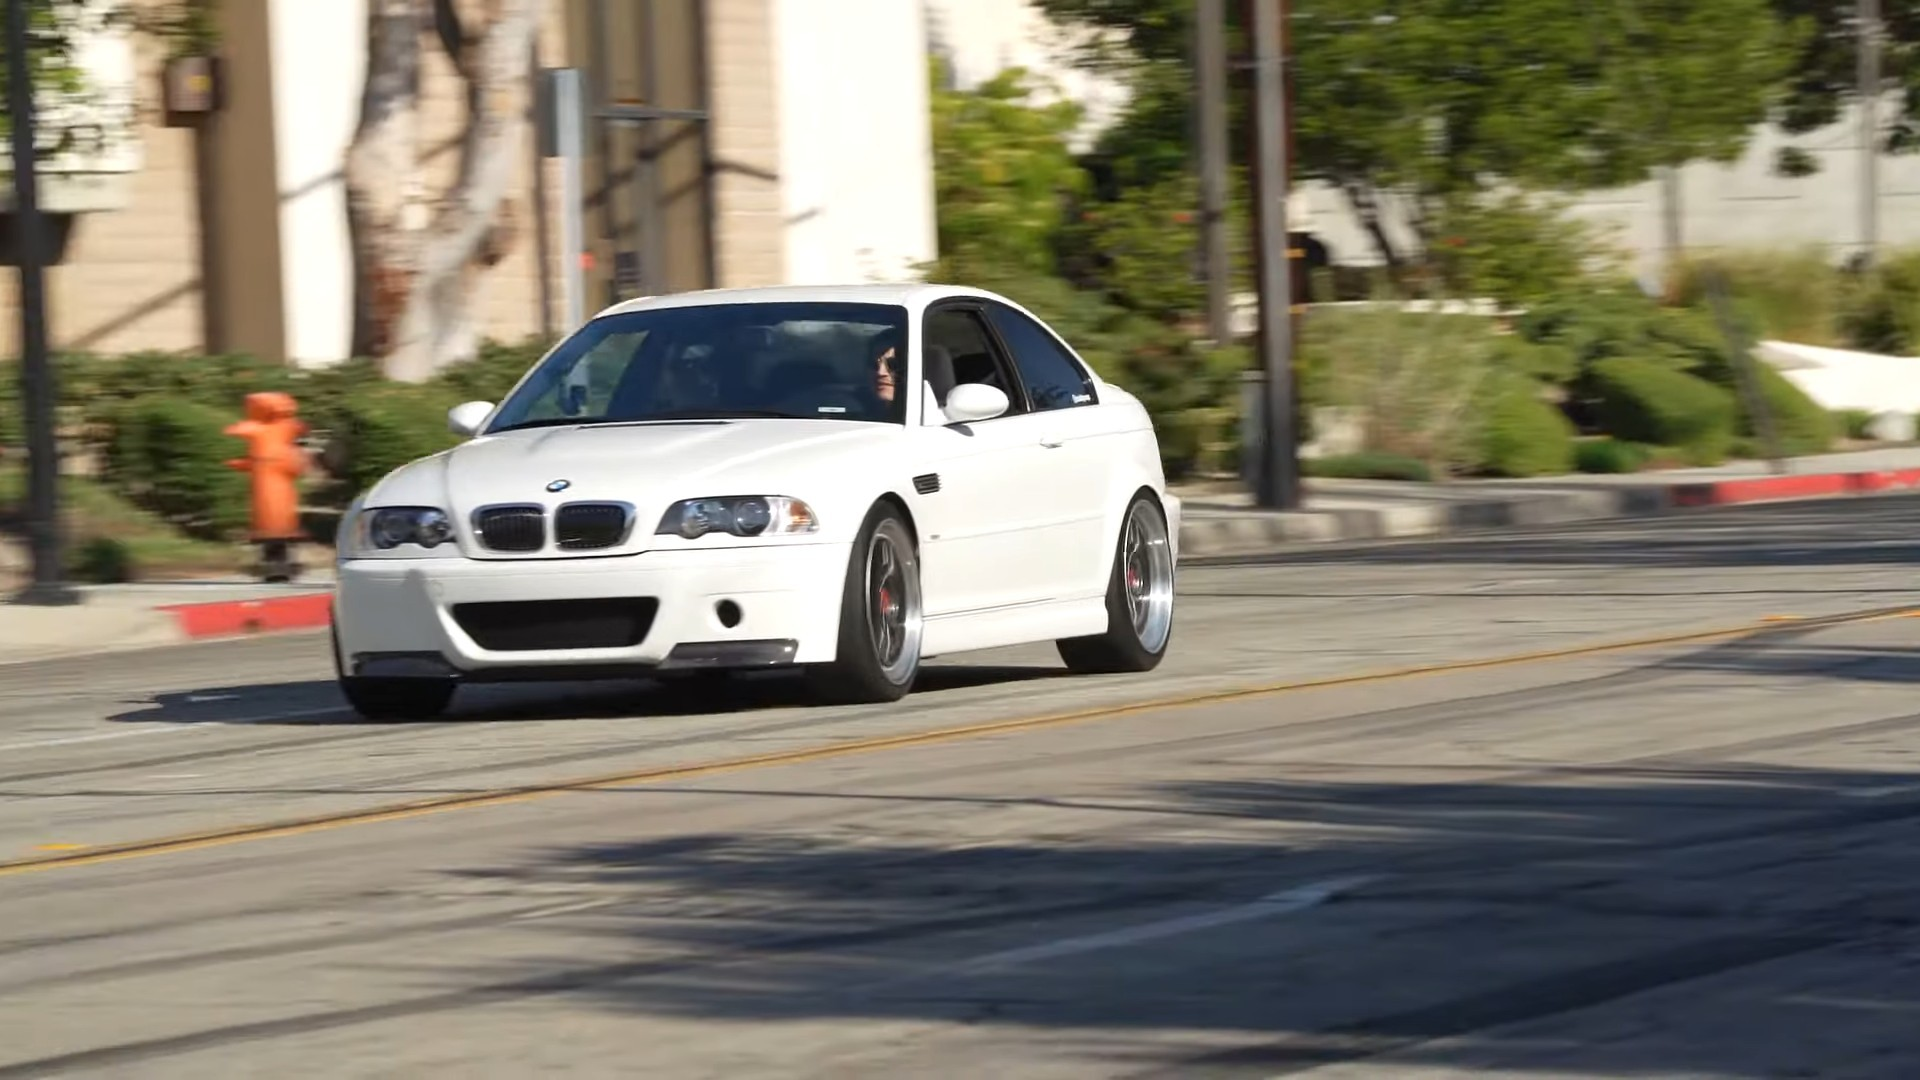 This 2005 Bmw M3 E46 Is A Csl Tribute Done Properly With North American Flavor Autoevolution